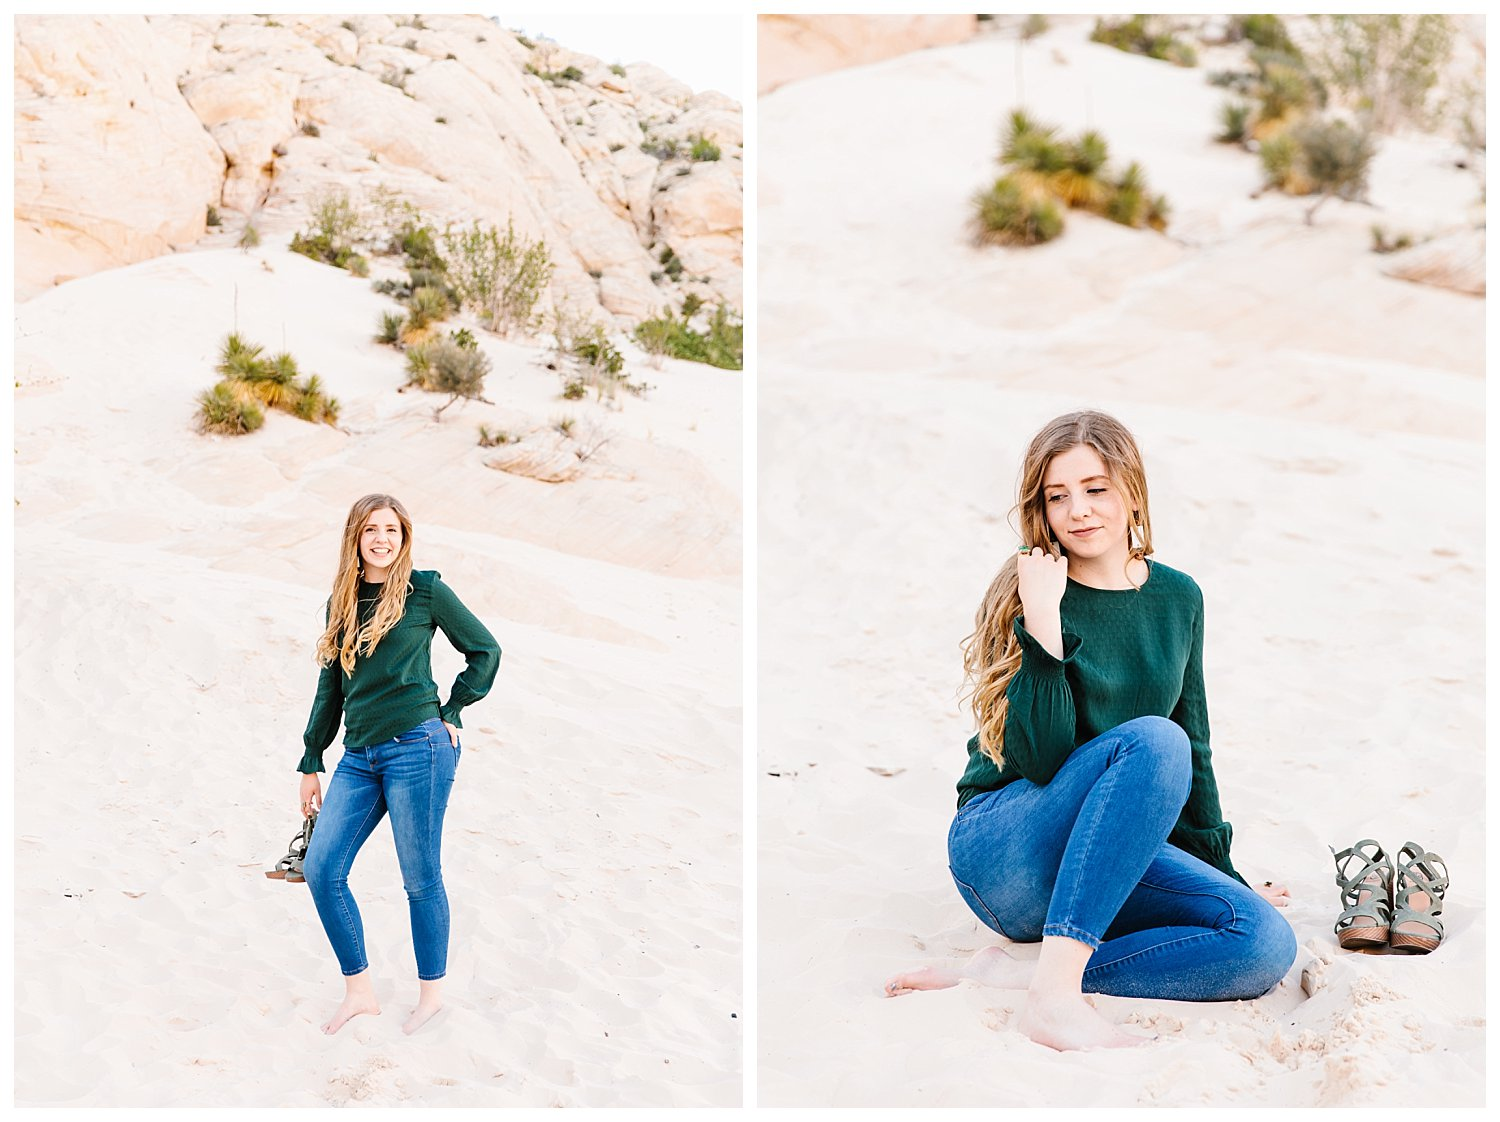 Family Session in Snow Canyon Utah | Rachel Lindsey Photography | Utah Family Photographer 11